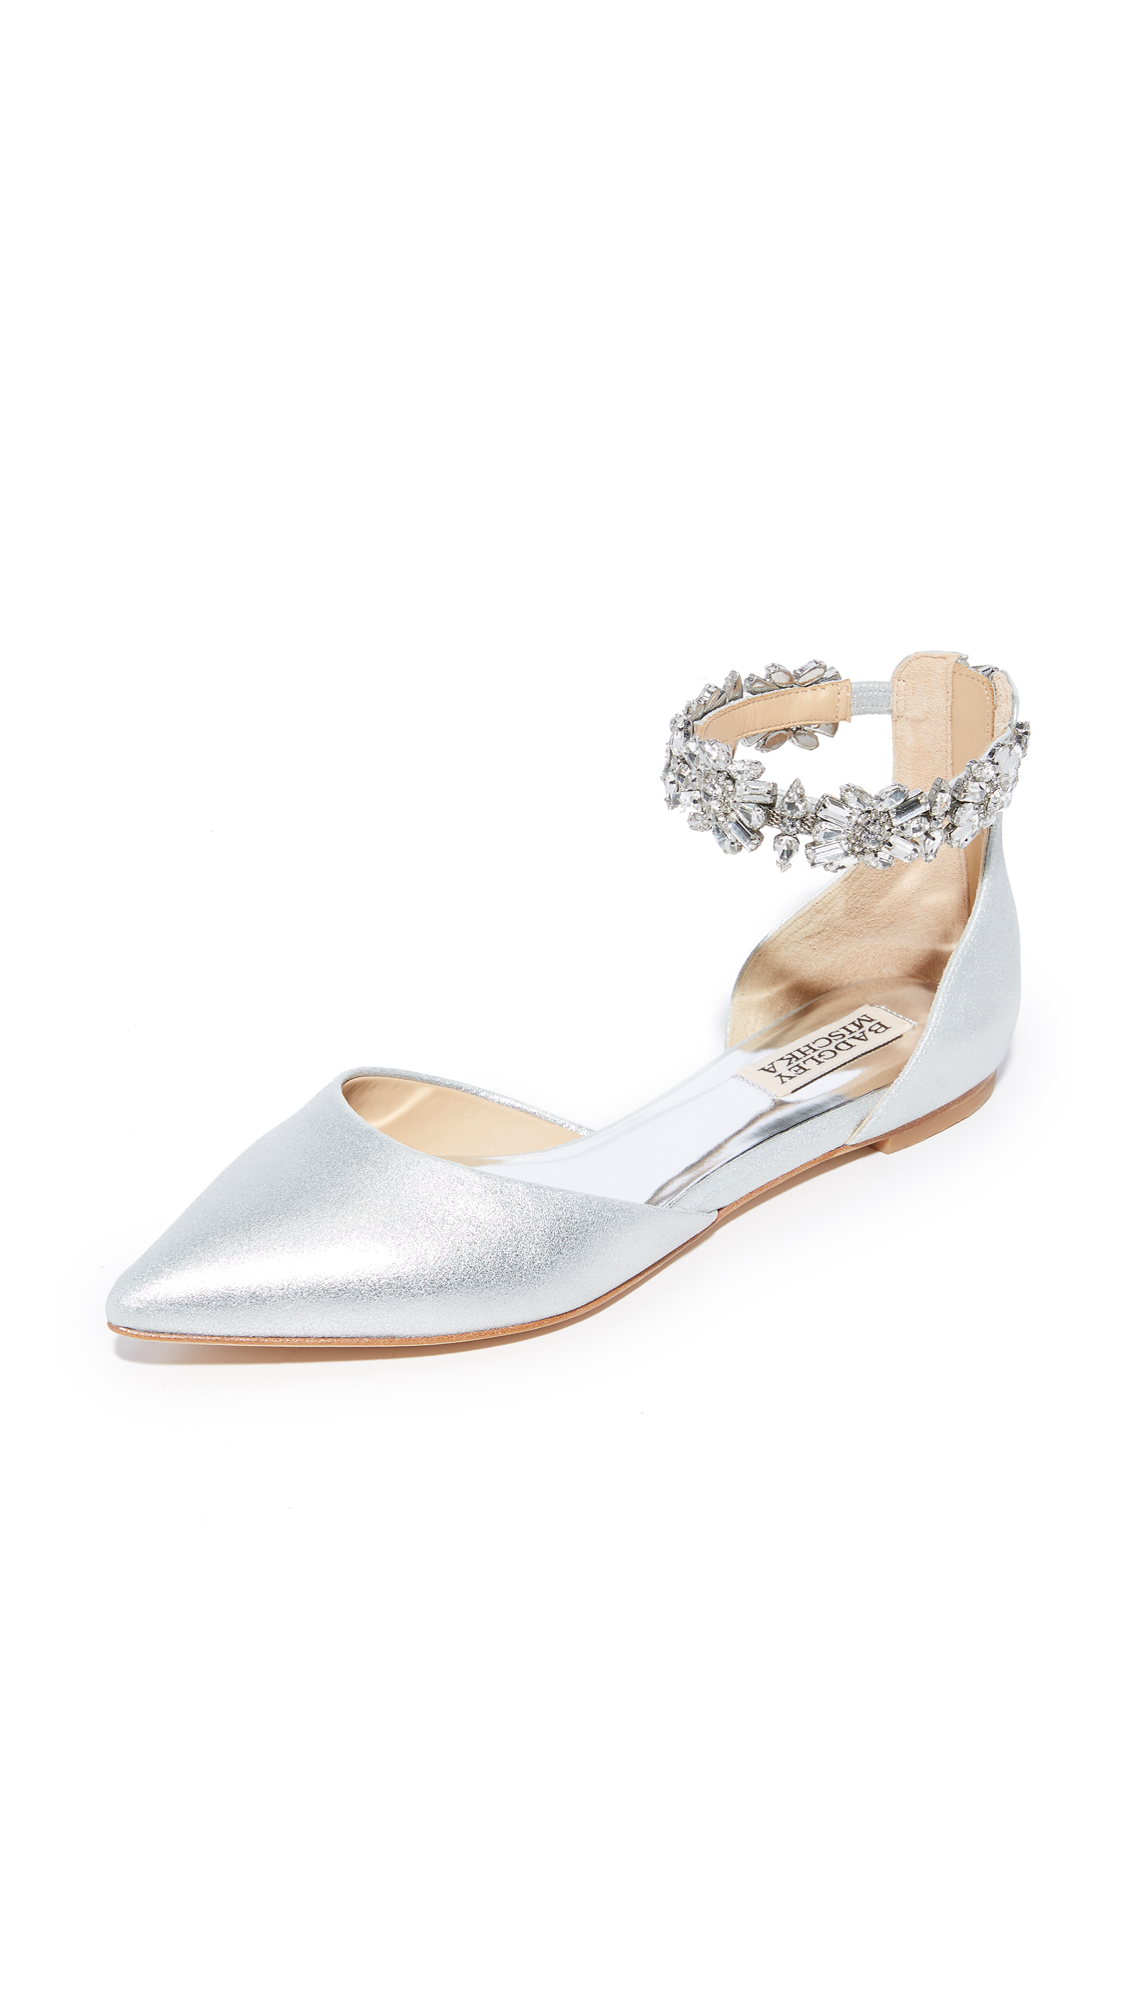 Badgley Mischka Morgen II Ankle Strap Flats - Silver